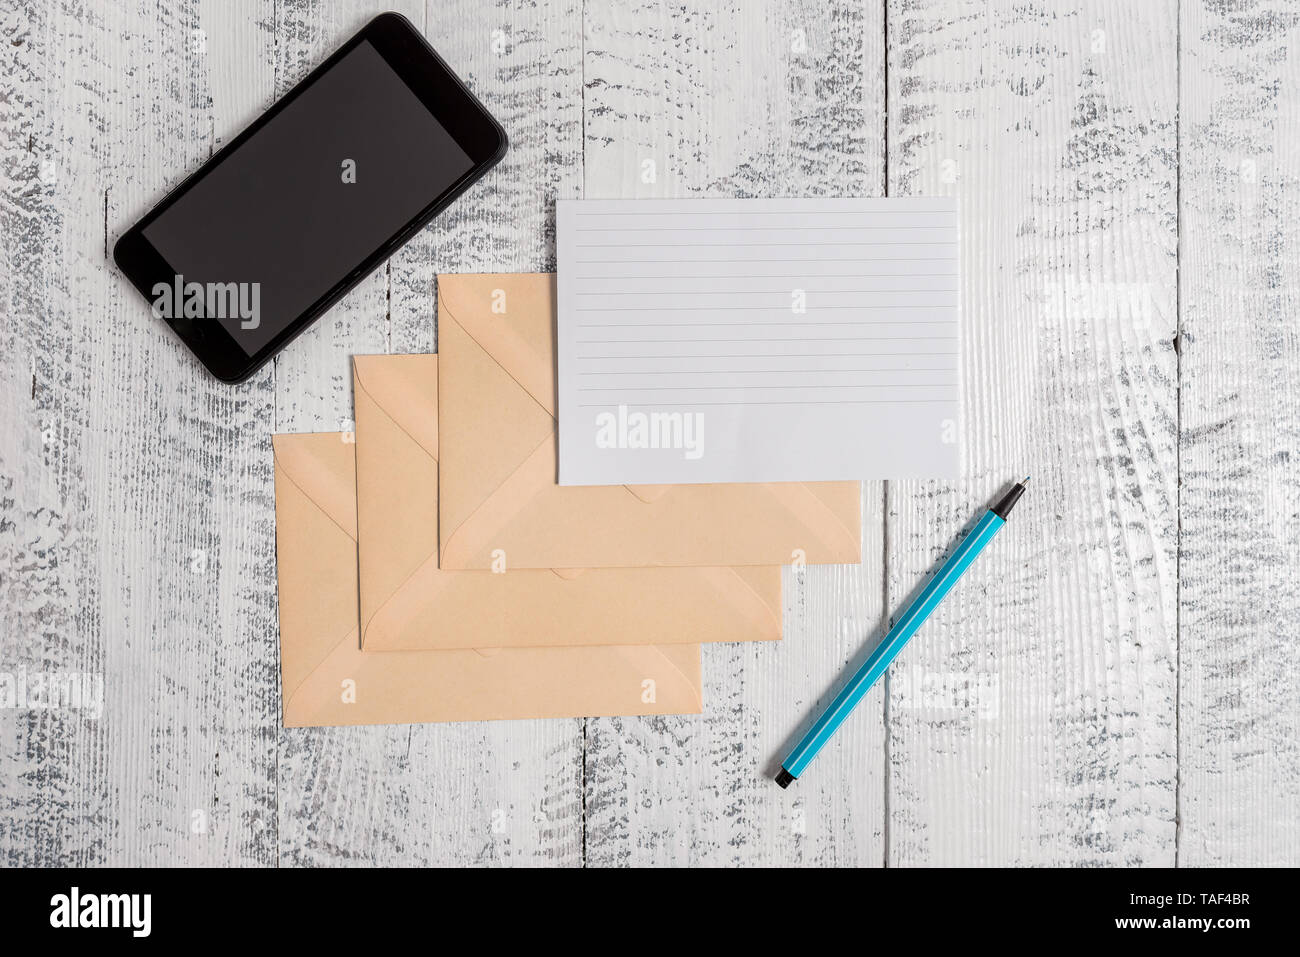 Three envelopes marker ruled paper smartphone sheet wooden background - Stock Image